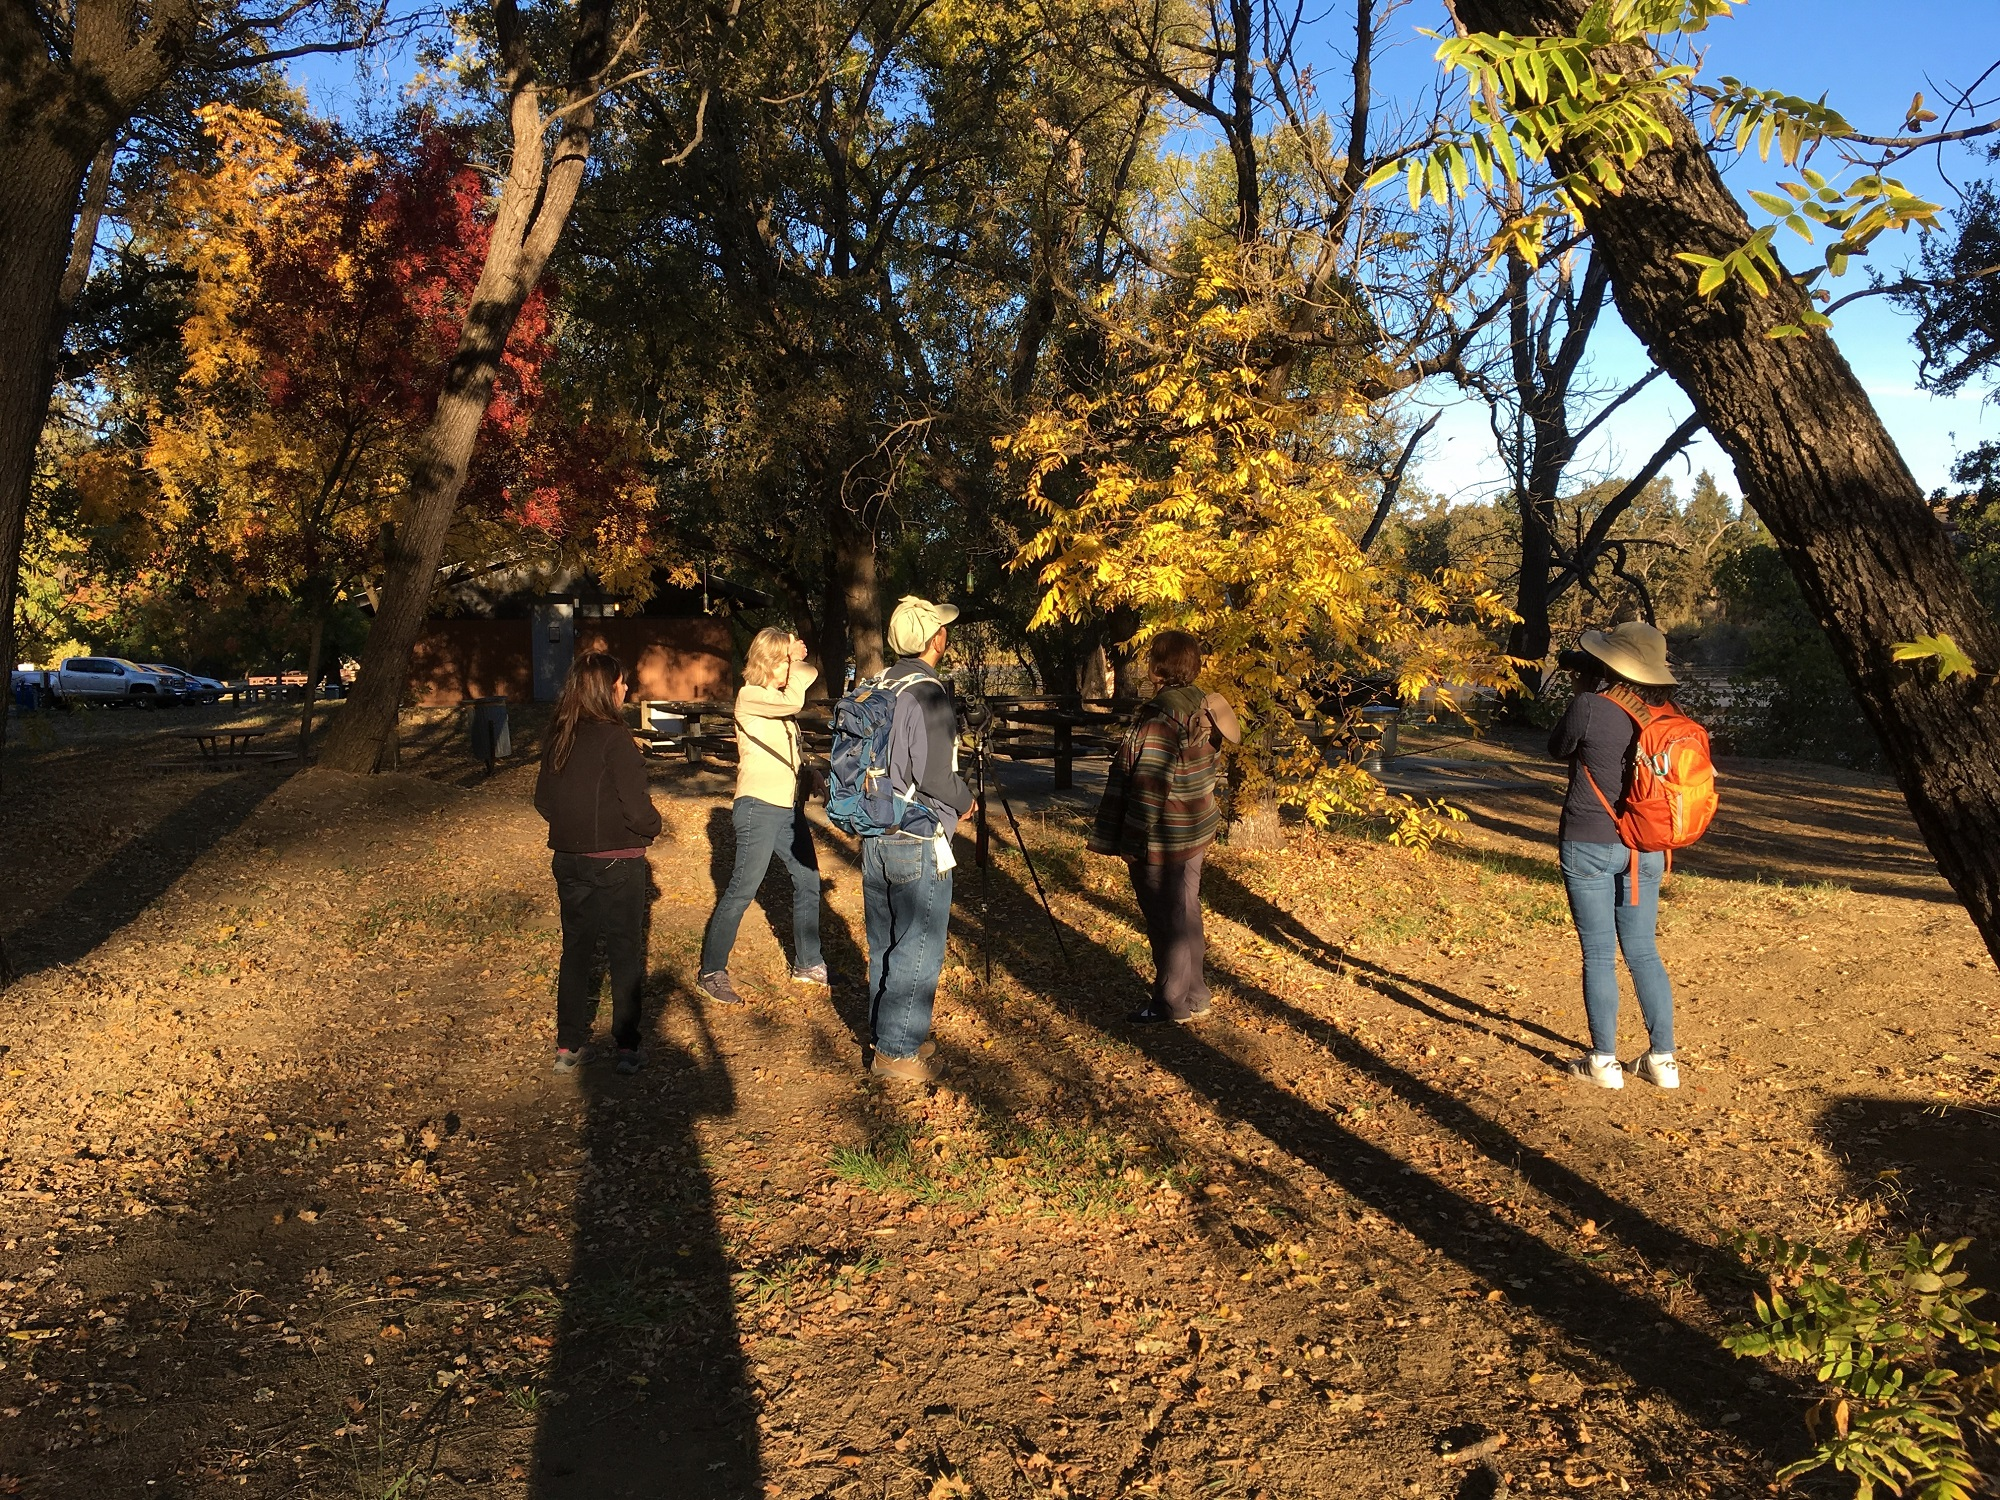 Field Trip Report: Lake Solano, Nov 3 2018